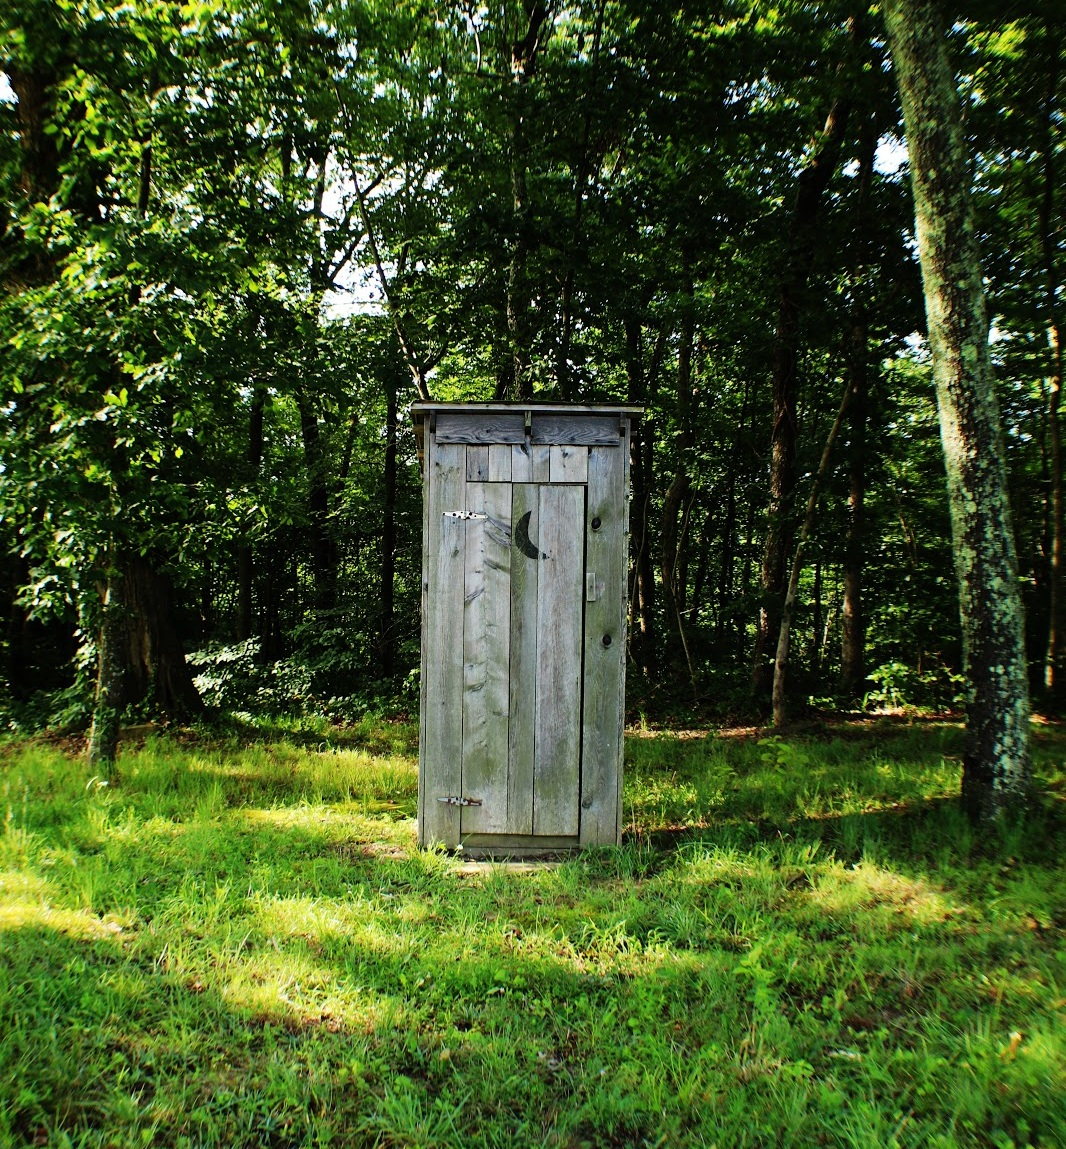 How+to+pee+in+the+woods